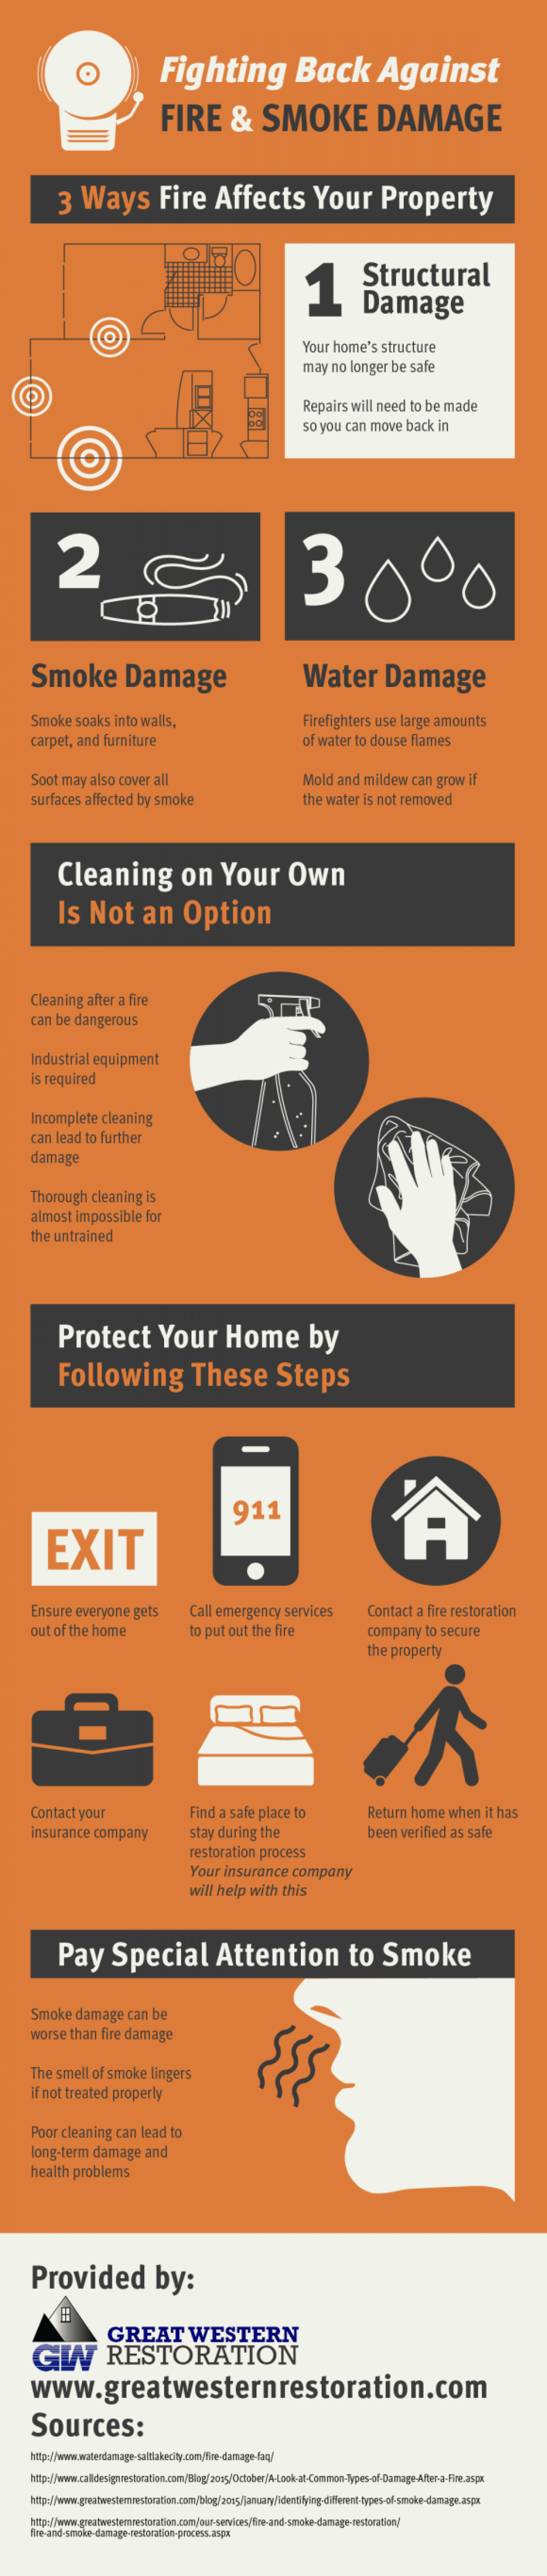 Fighting Back Against Fire and Smoke Damage Infographic